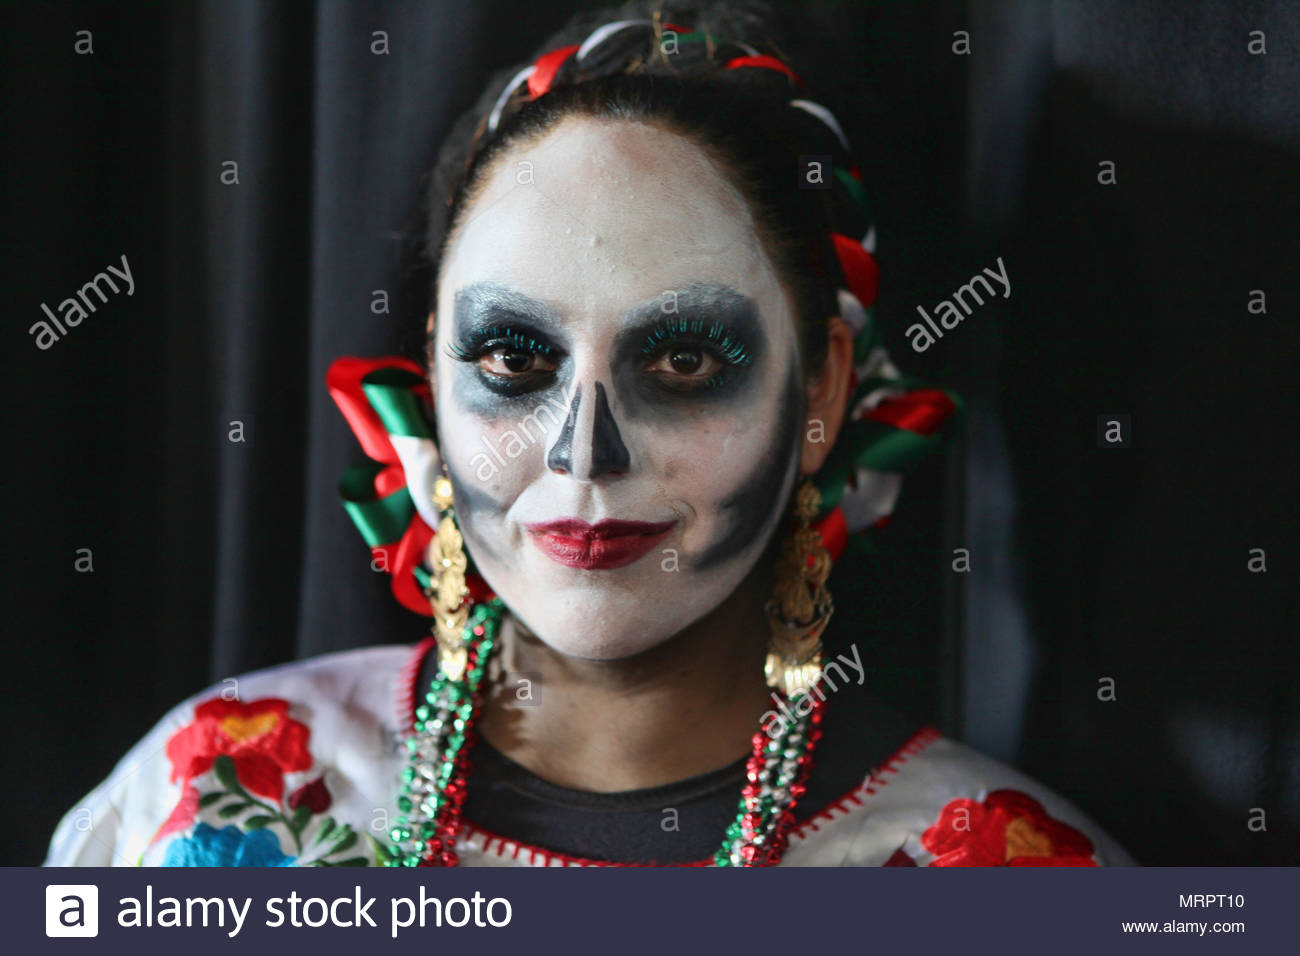 A woman dressed in skeleton make-up on the Day of the Dead (Dia de los Muertos), a traditional Mexican holiday which coincides with All Souls Day in t - Stock Image